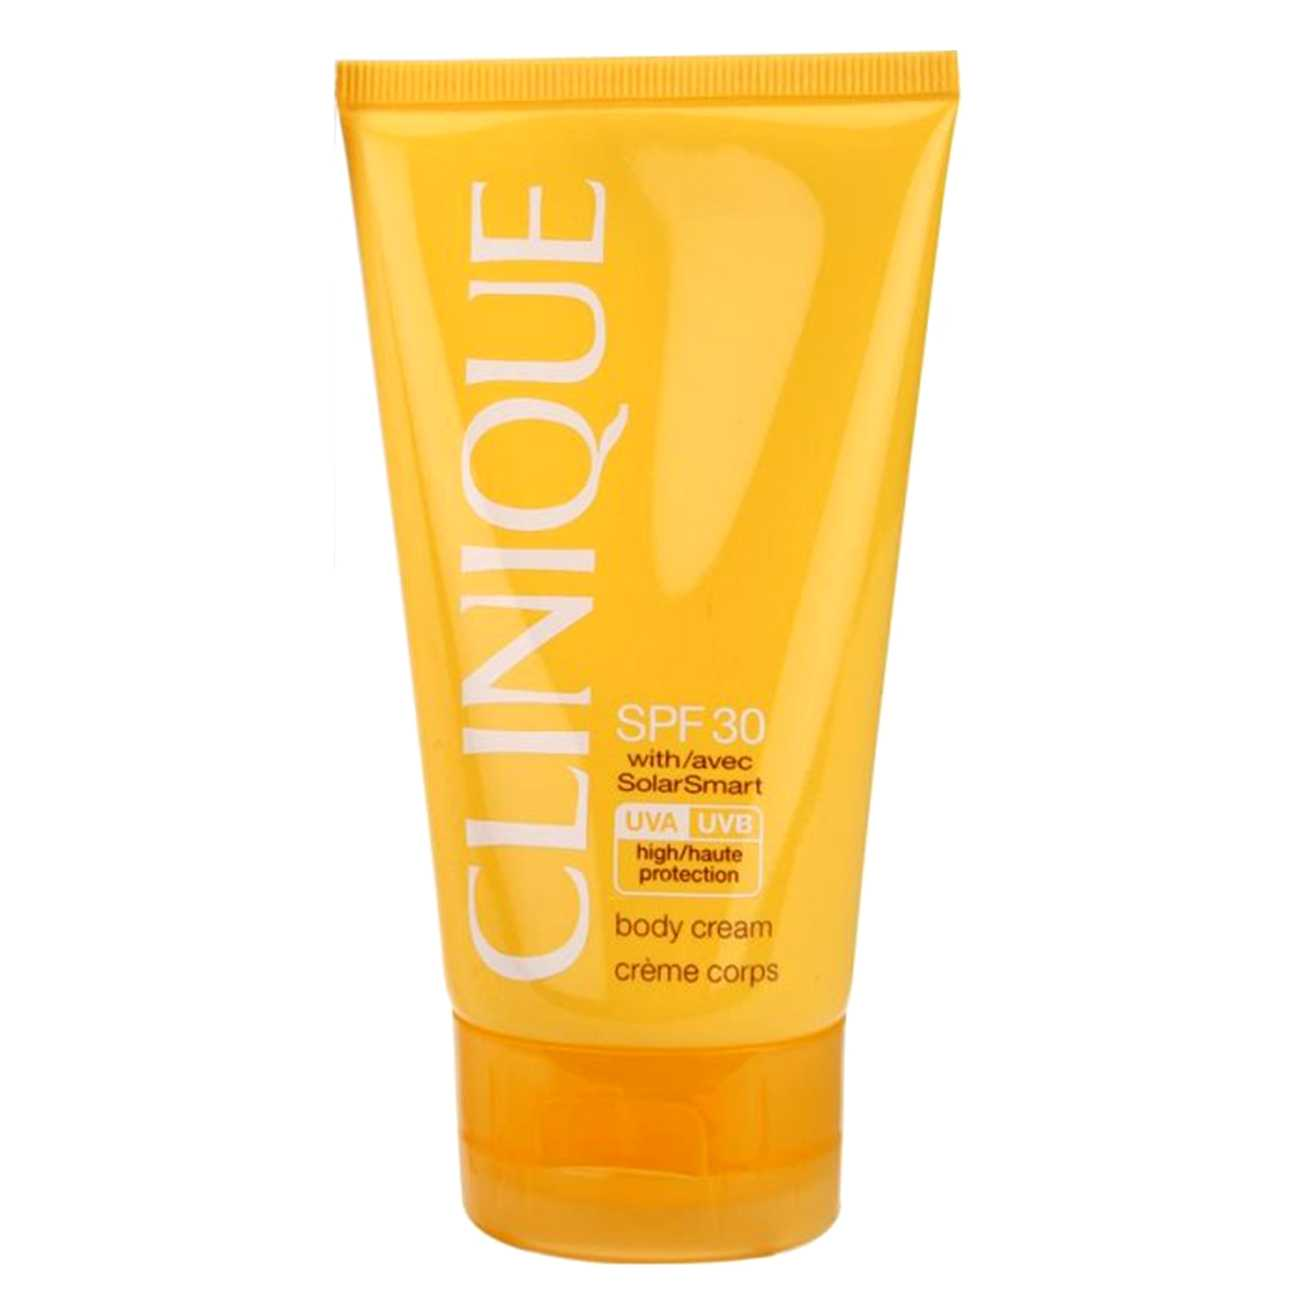 SUN BODY CREAM 150 ML imagine produs